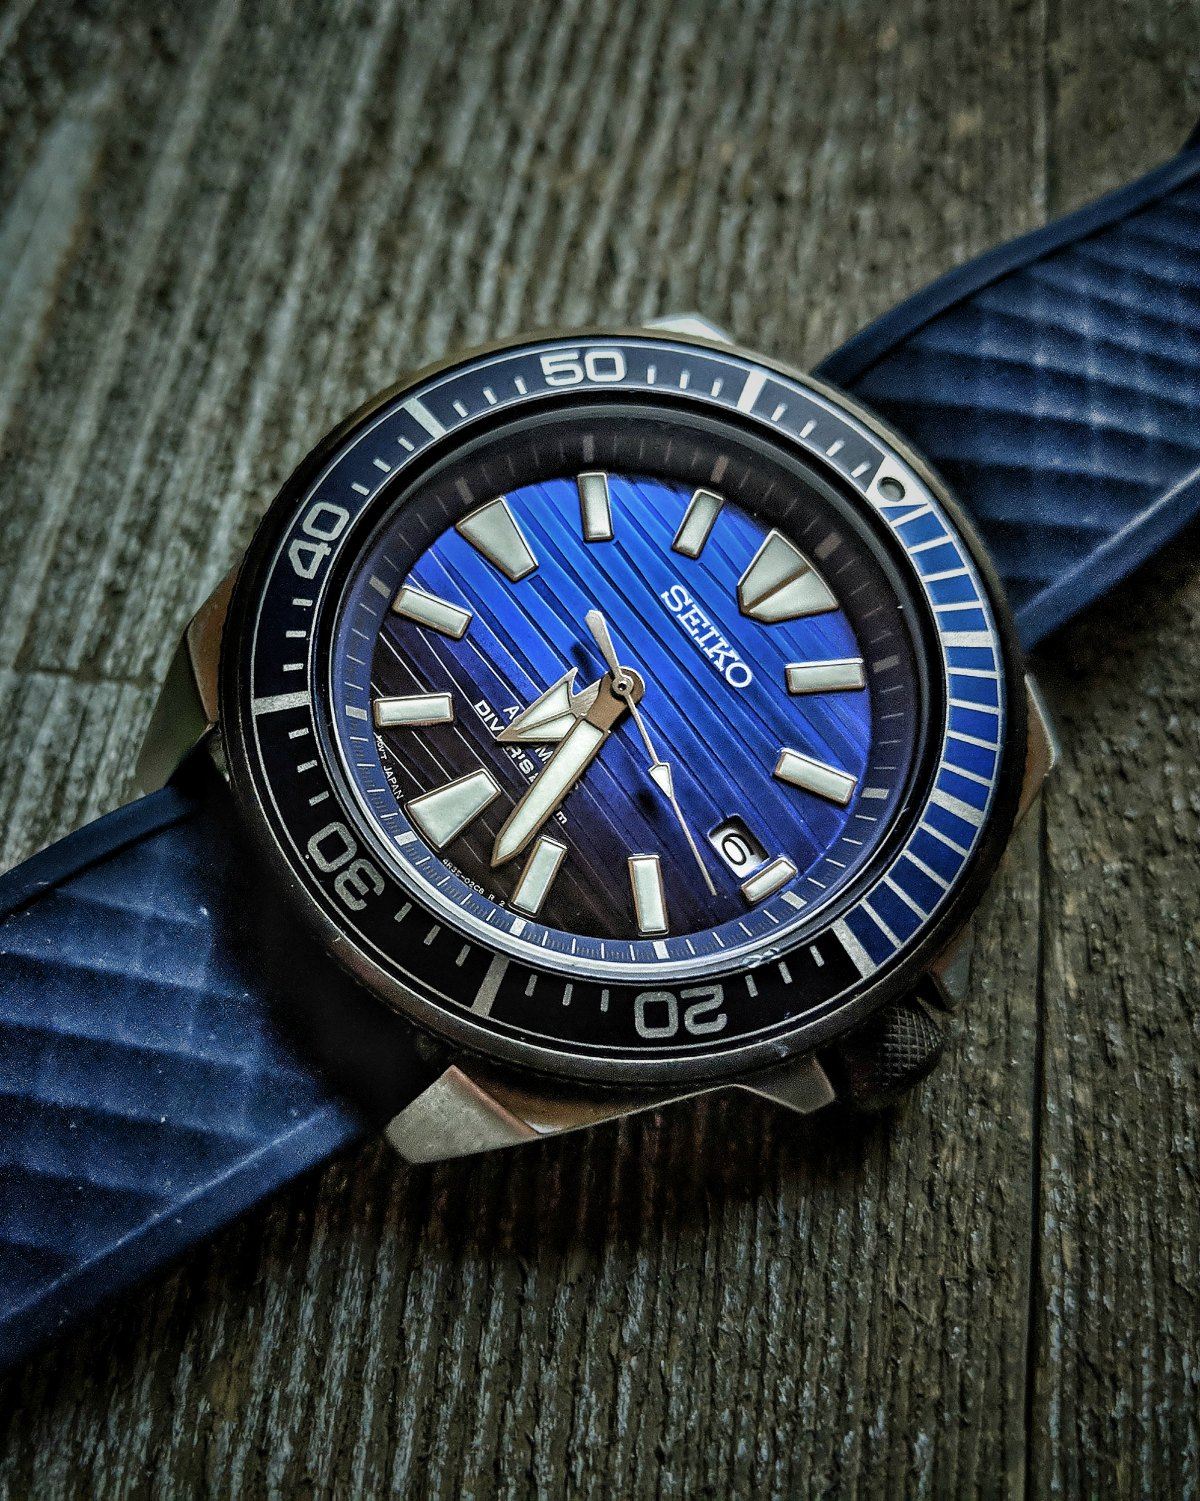 Seiko Watch Pictures